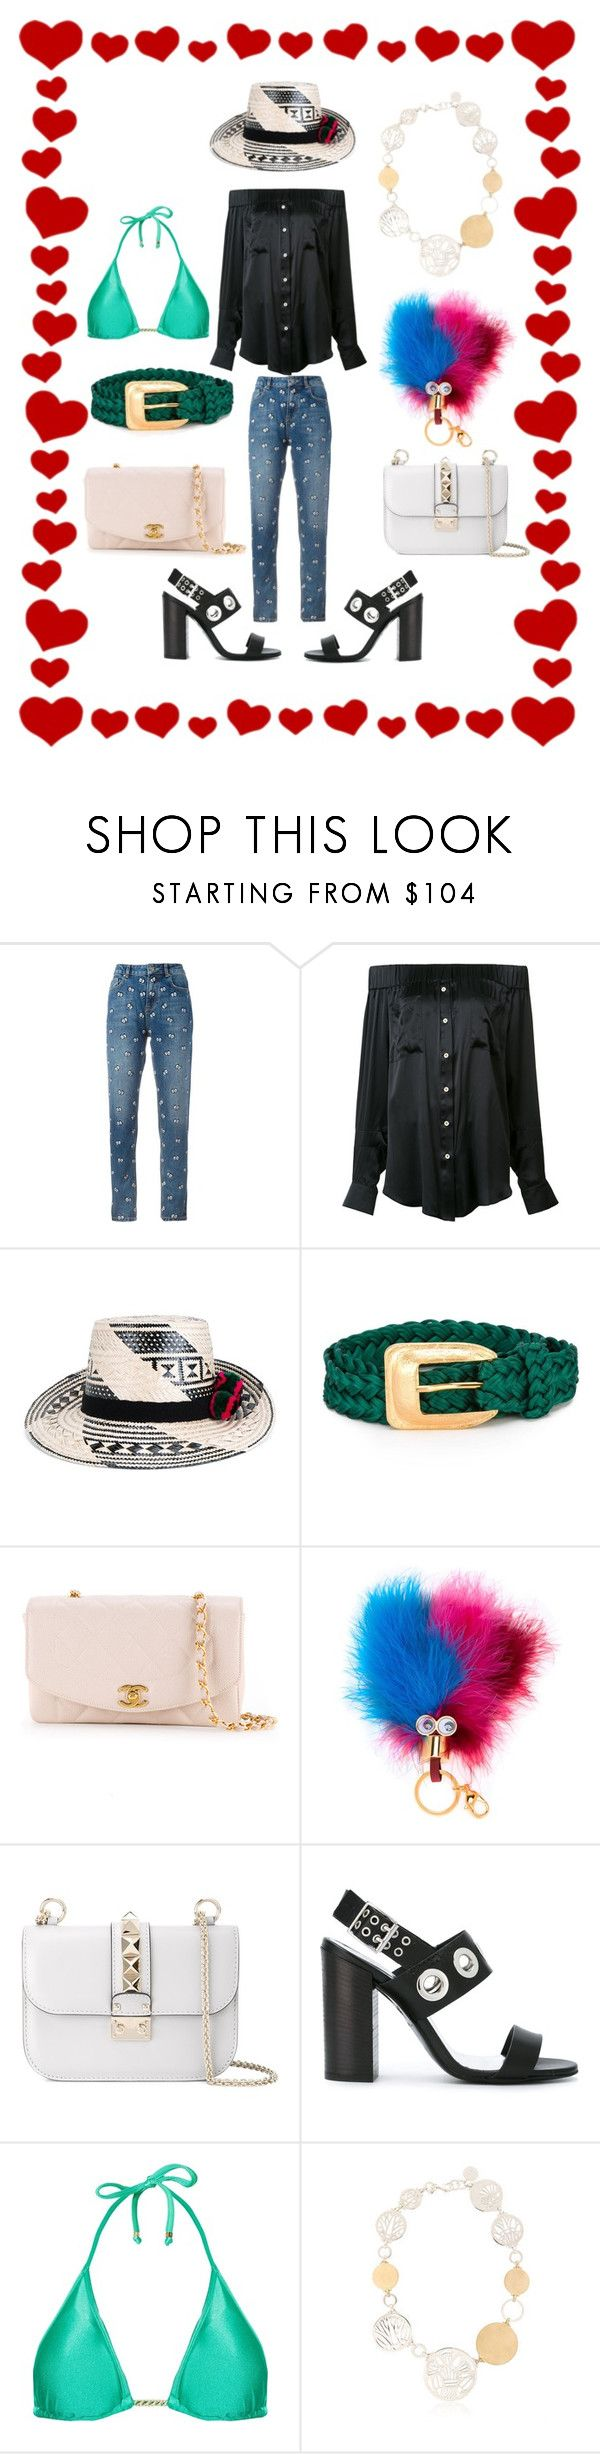 """superb fashion trends"" by monica022 ❤ liked on Polyvore featuring Zoe Karssen, Natasha Zinko, YOSUZI, Yves Saint Laurent, Chanel, Sophie Hulme, Valentino, Diesel, Amir Slama and AZZA FAHMY"